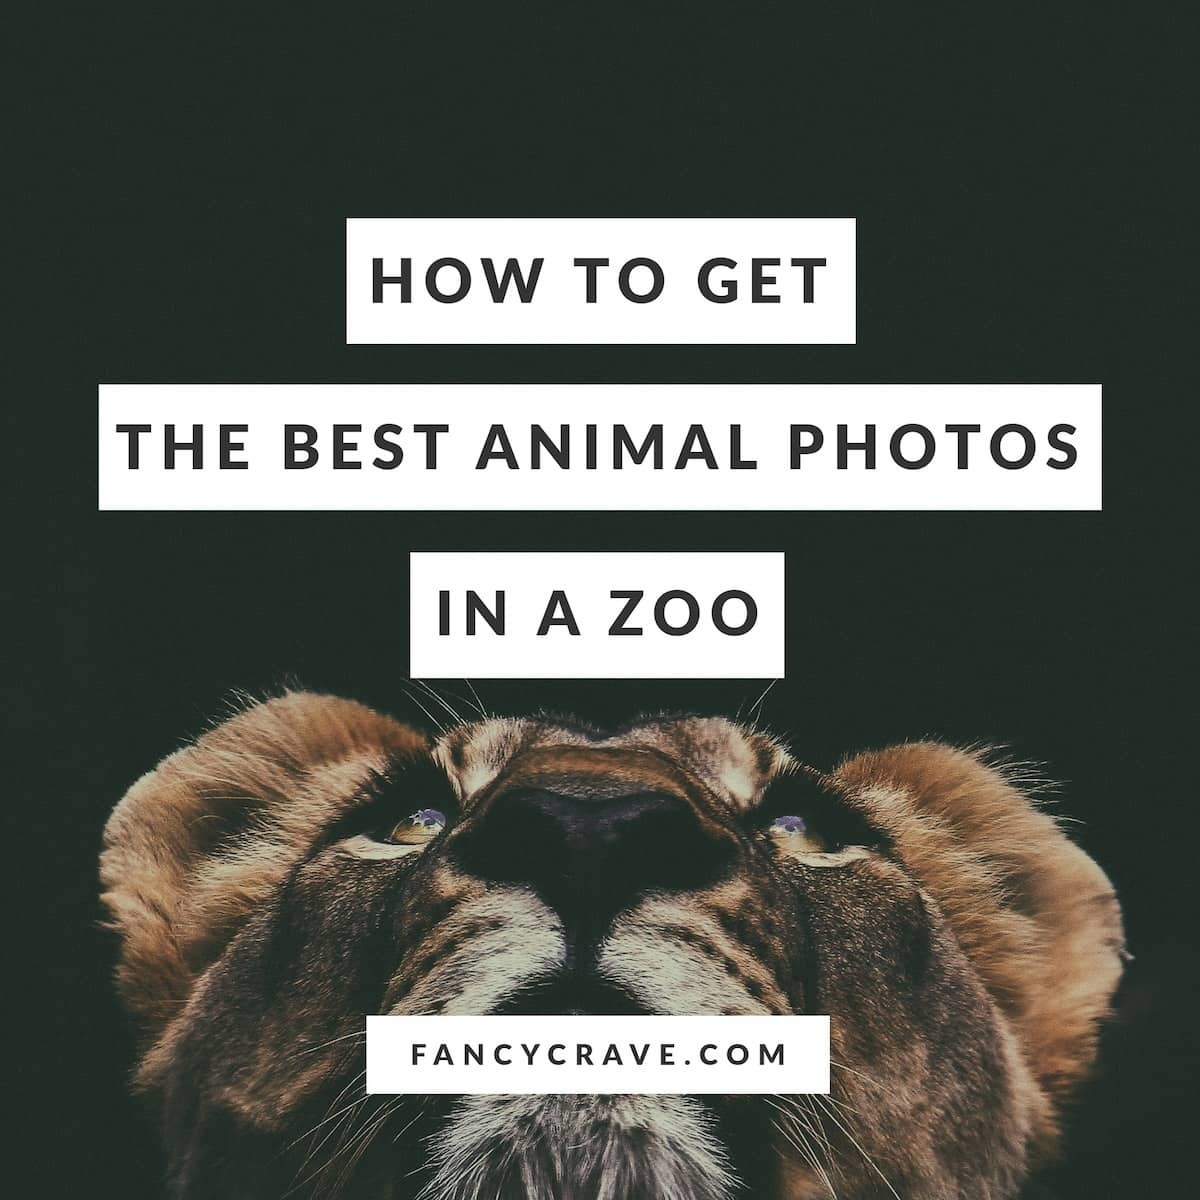 How-To-Get-The-Best-Animal-Photos-In-A-Zoo